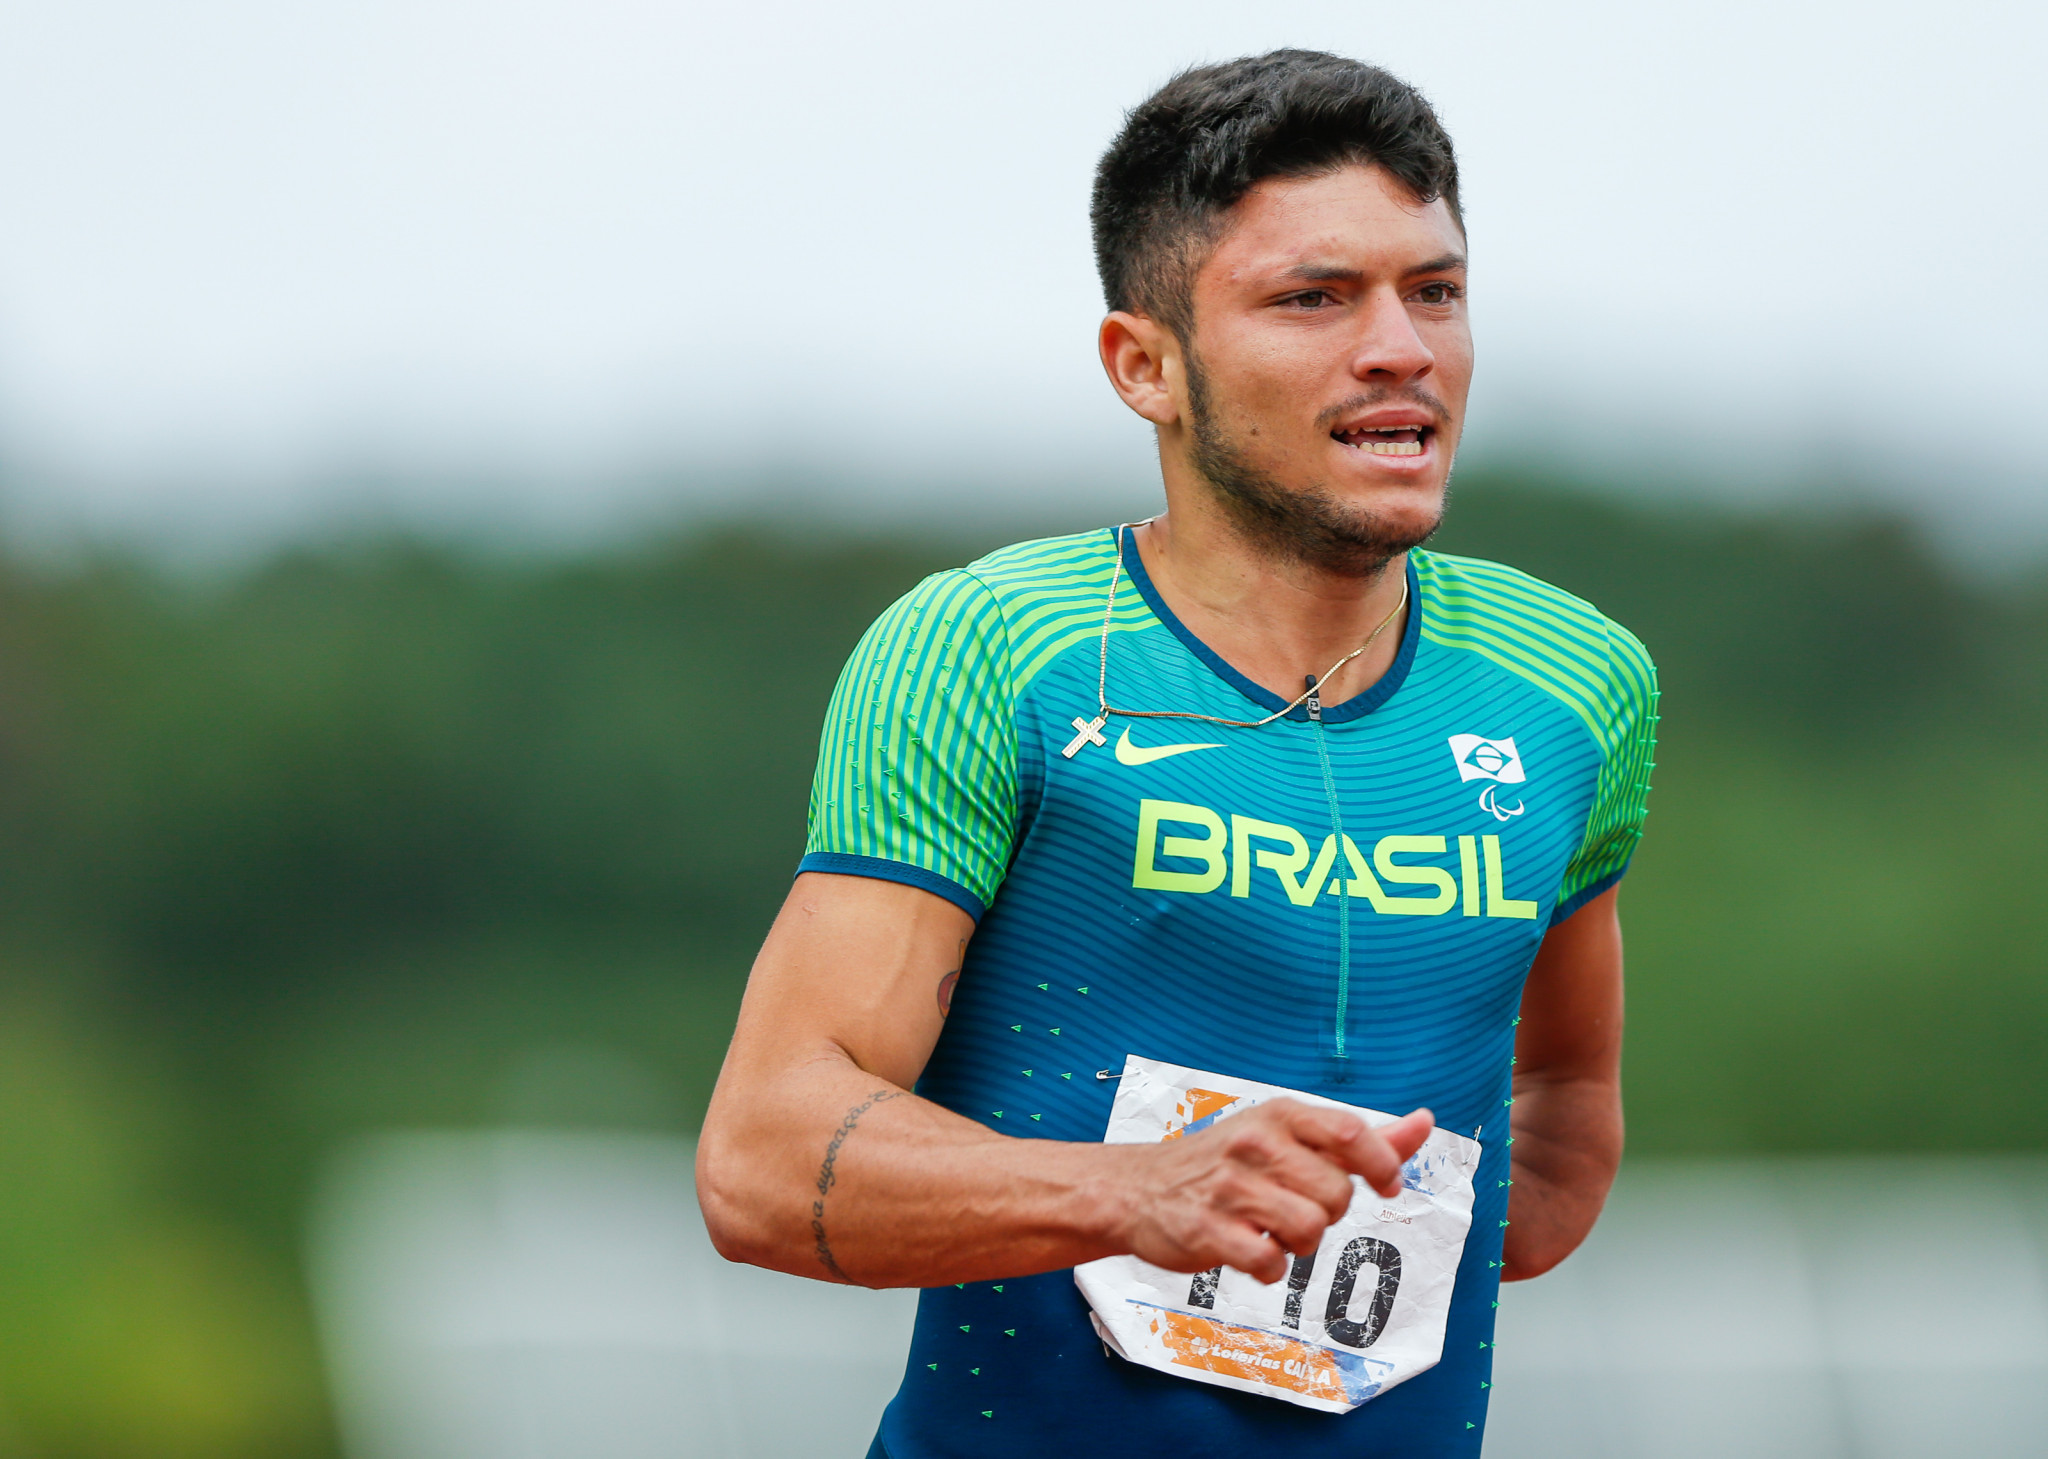 Brazilian sprinting success at World Para Athletics Grand Prix in Berlin